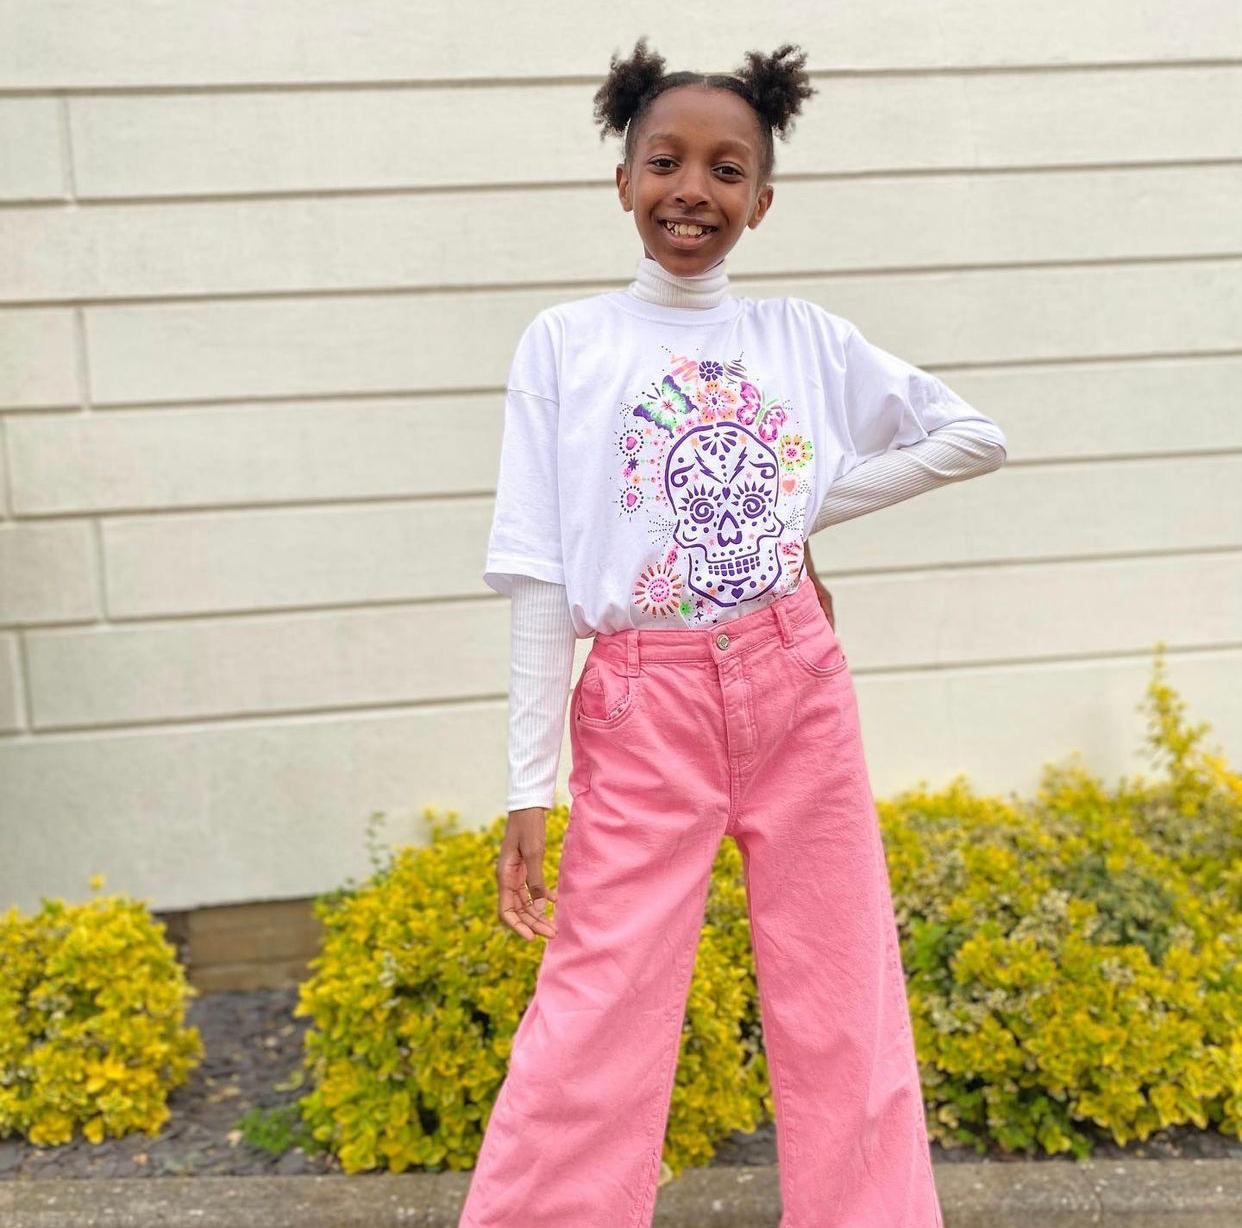 Read more about the article Rising Star: Maya Glitters Makes Her TV Debut On Blue Peter!